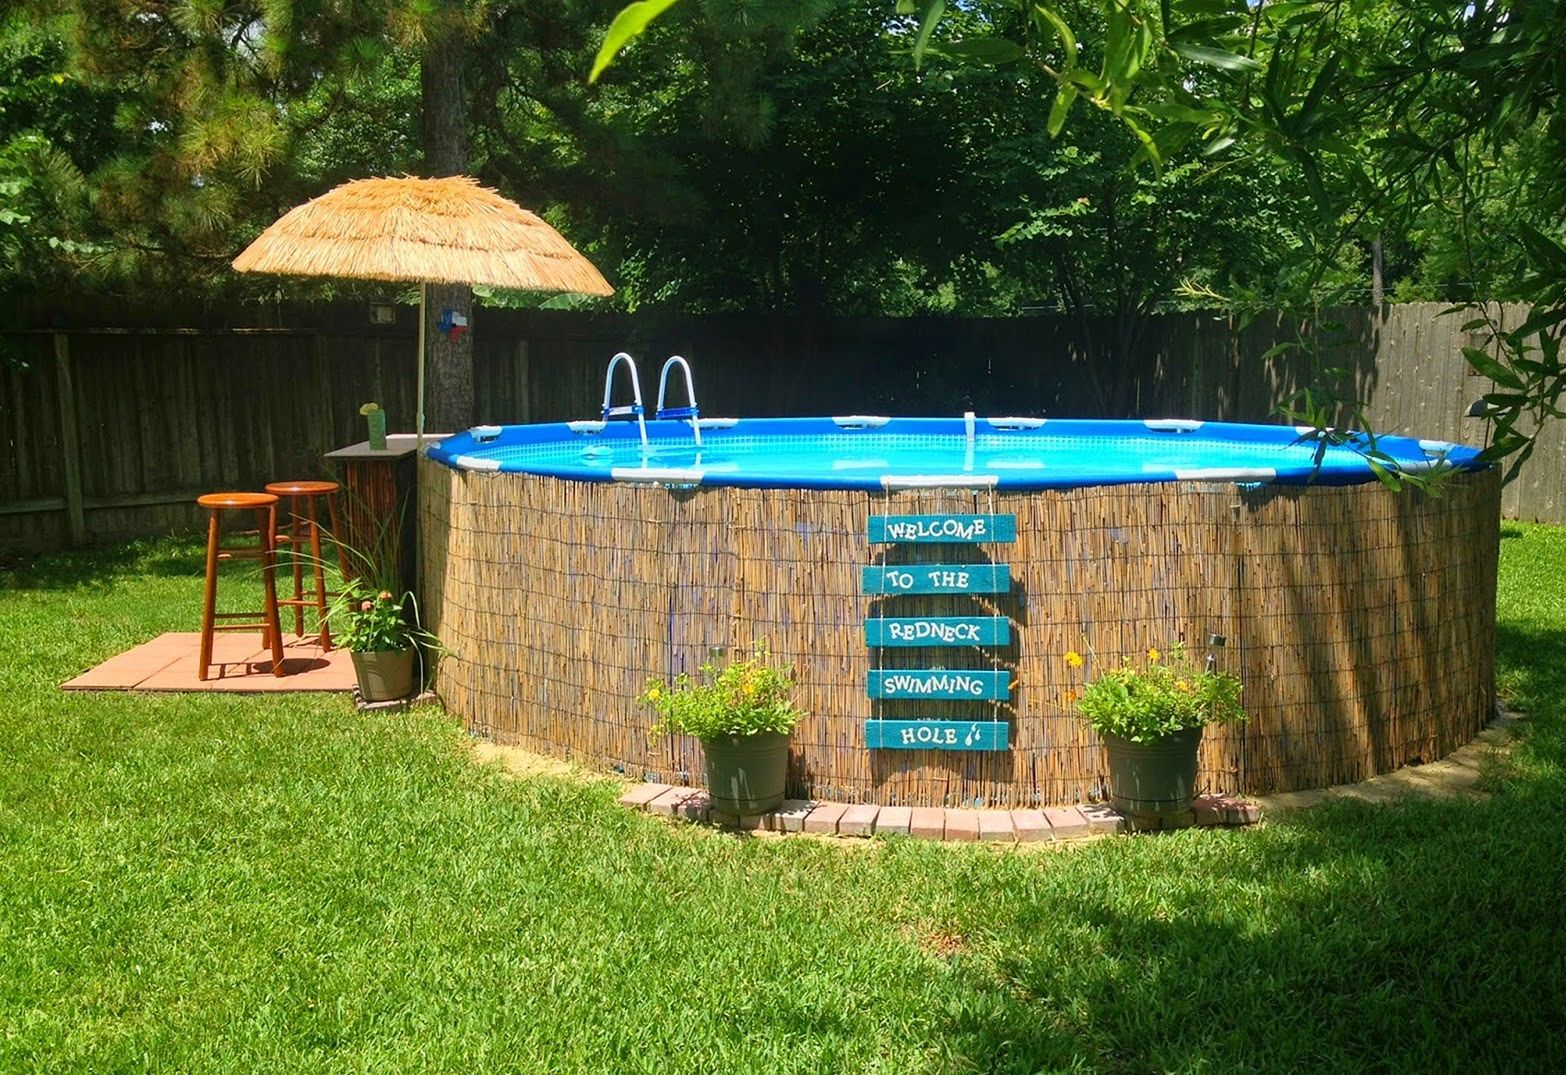 Top 110 Diy Above Ground Pool Ideas On A Budget Backyard Pool In Ground Pools Above Ground Pool Landscaping